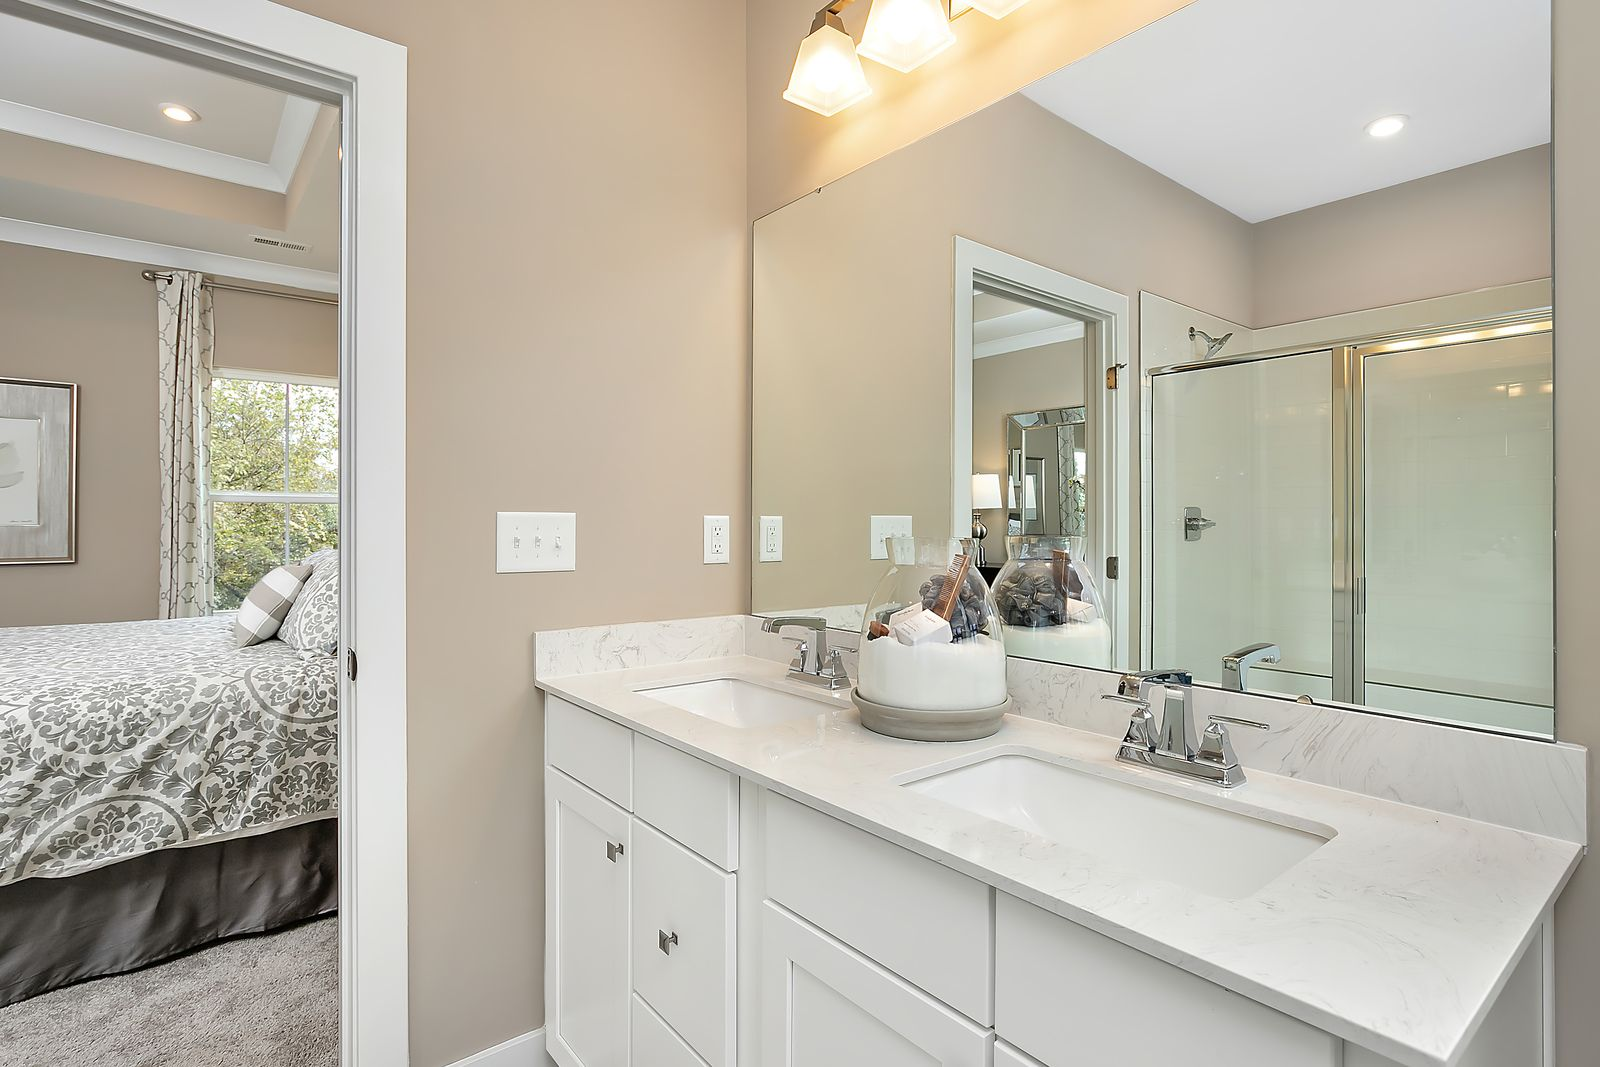 Bathroom featured in the Bramante Ranch Slab - Basement Available By Ryan Homes in Chicago, IL